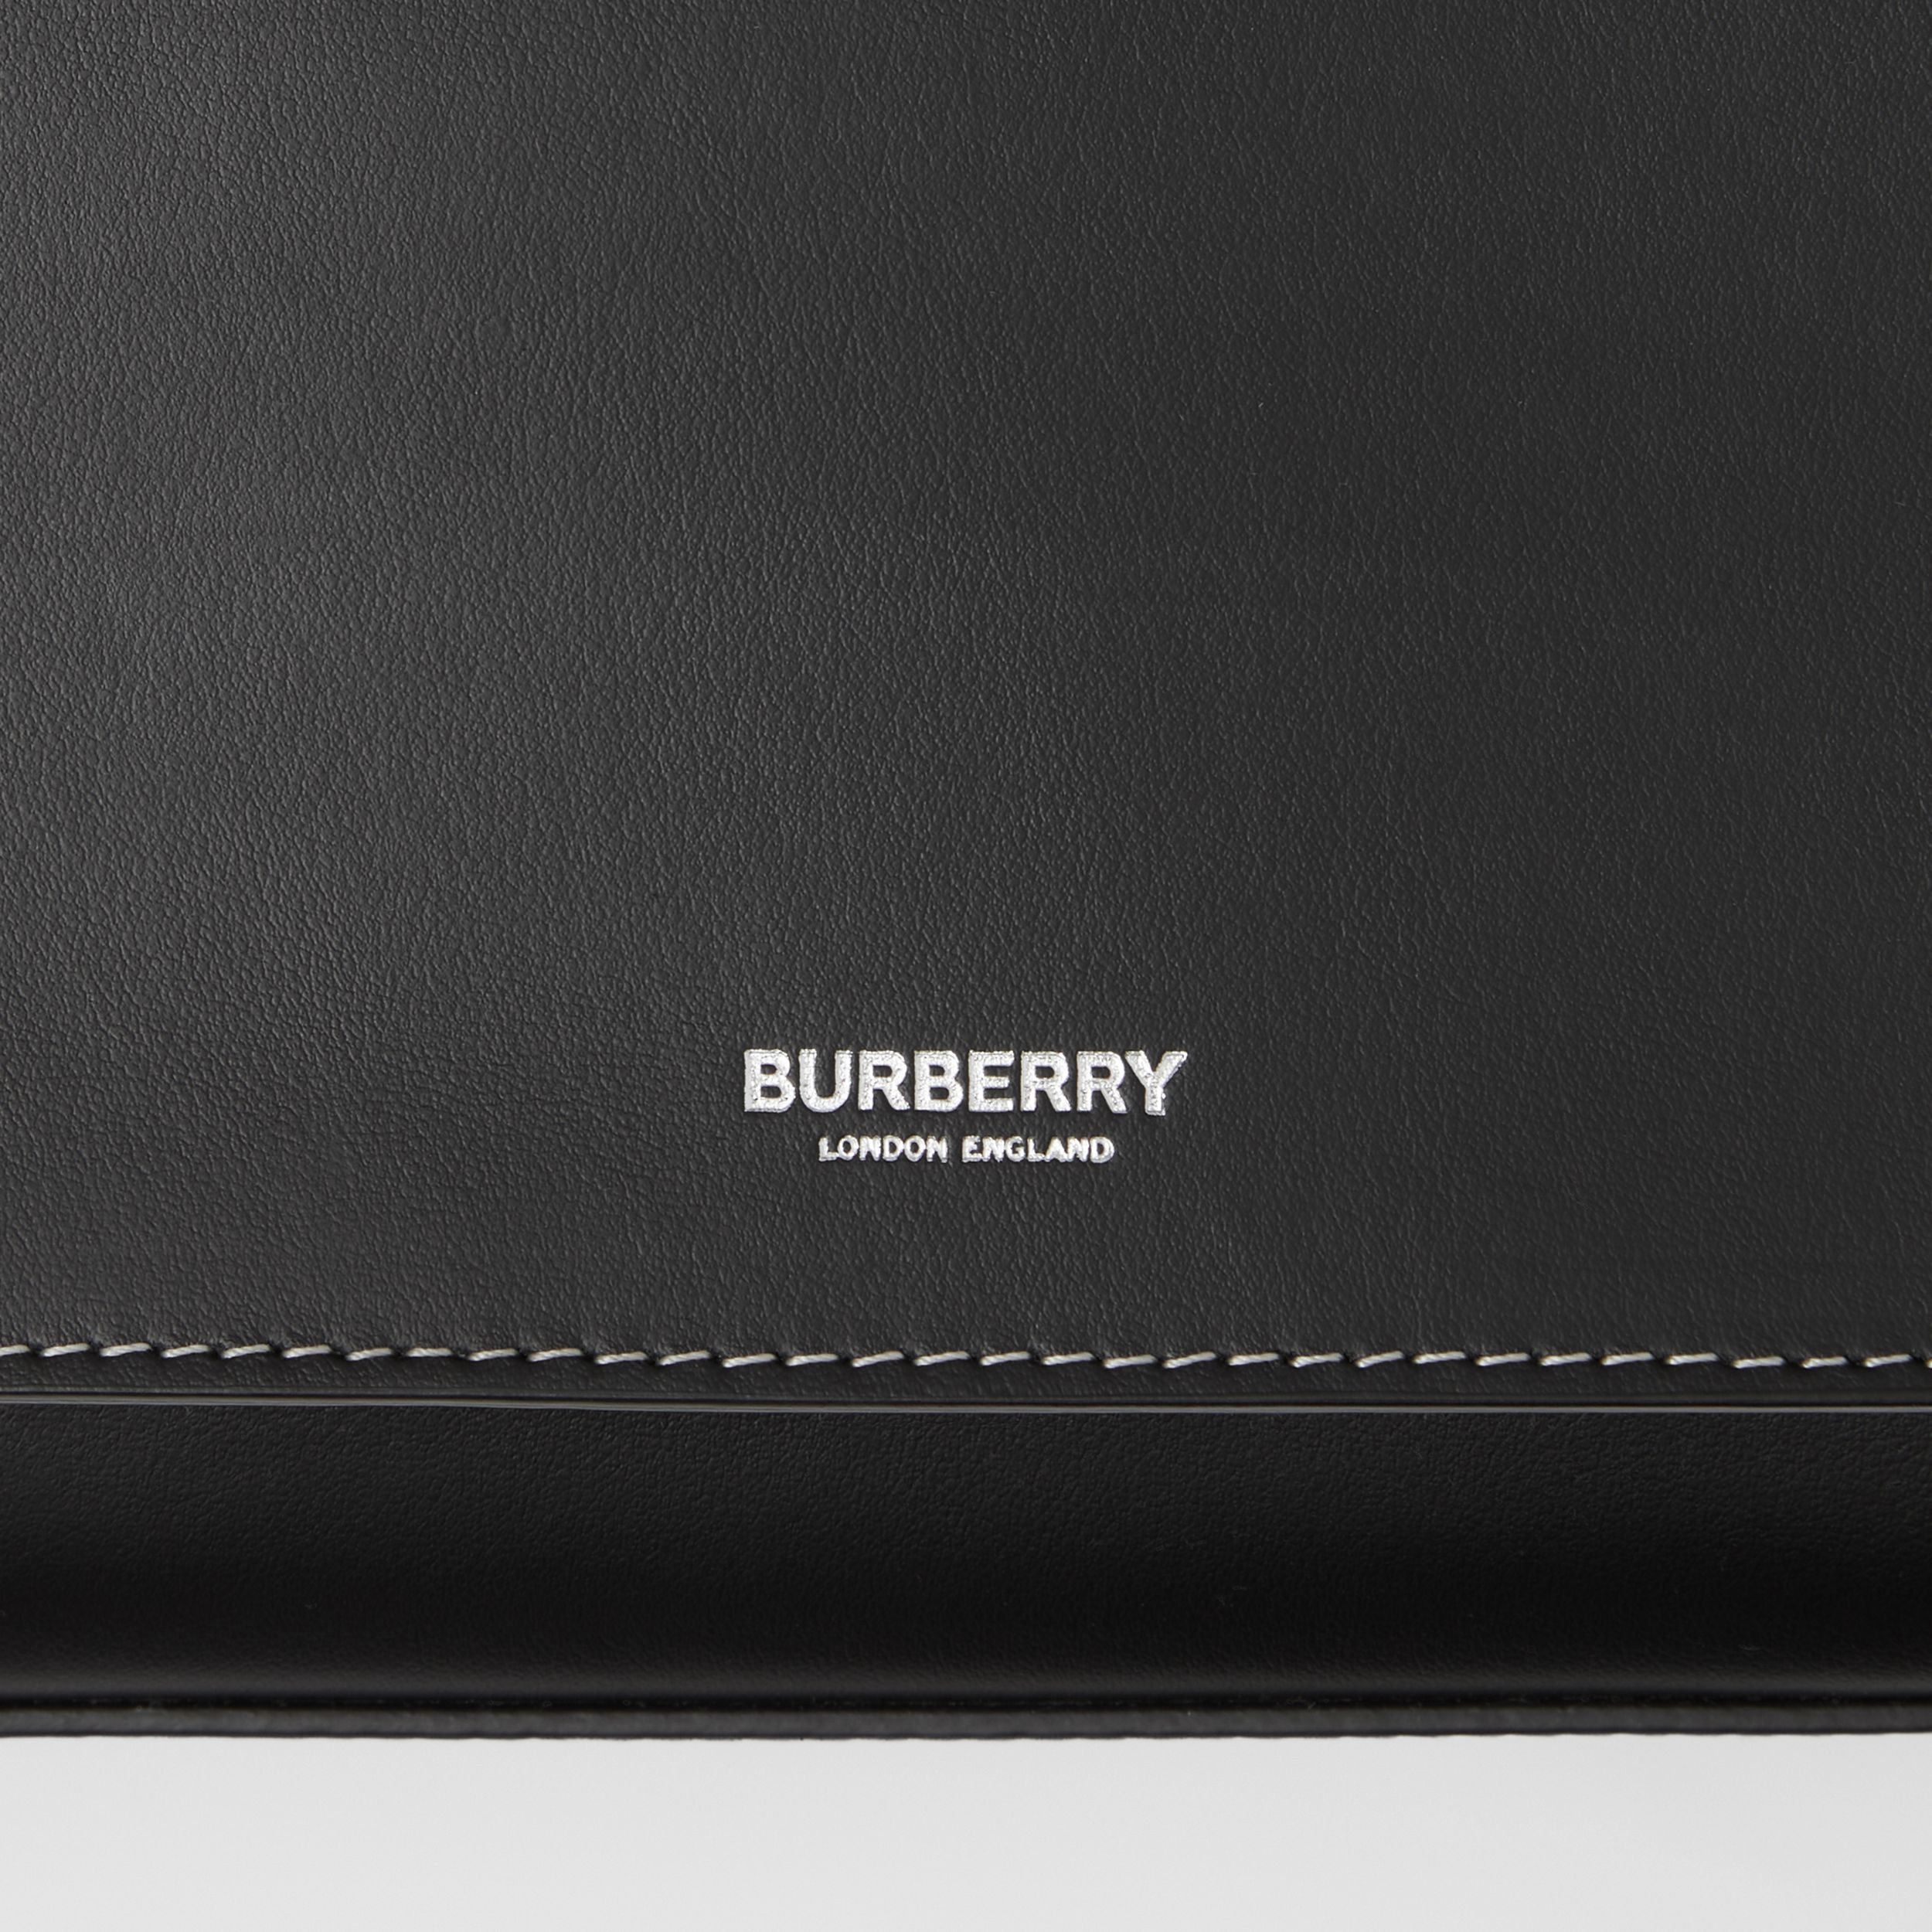 Mini Topstitched Leather Pocket Bag in Black - Women | Burberry - 2